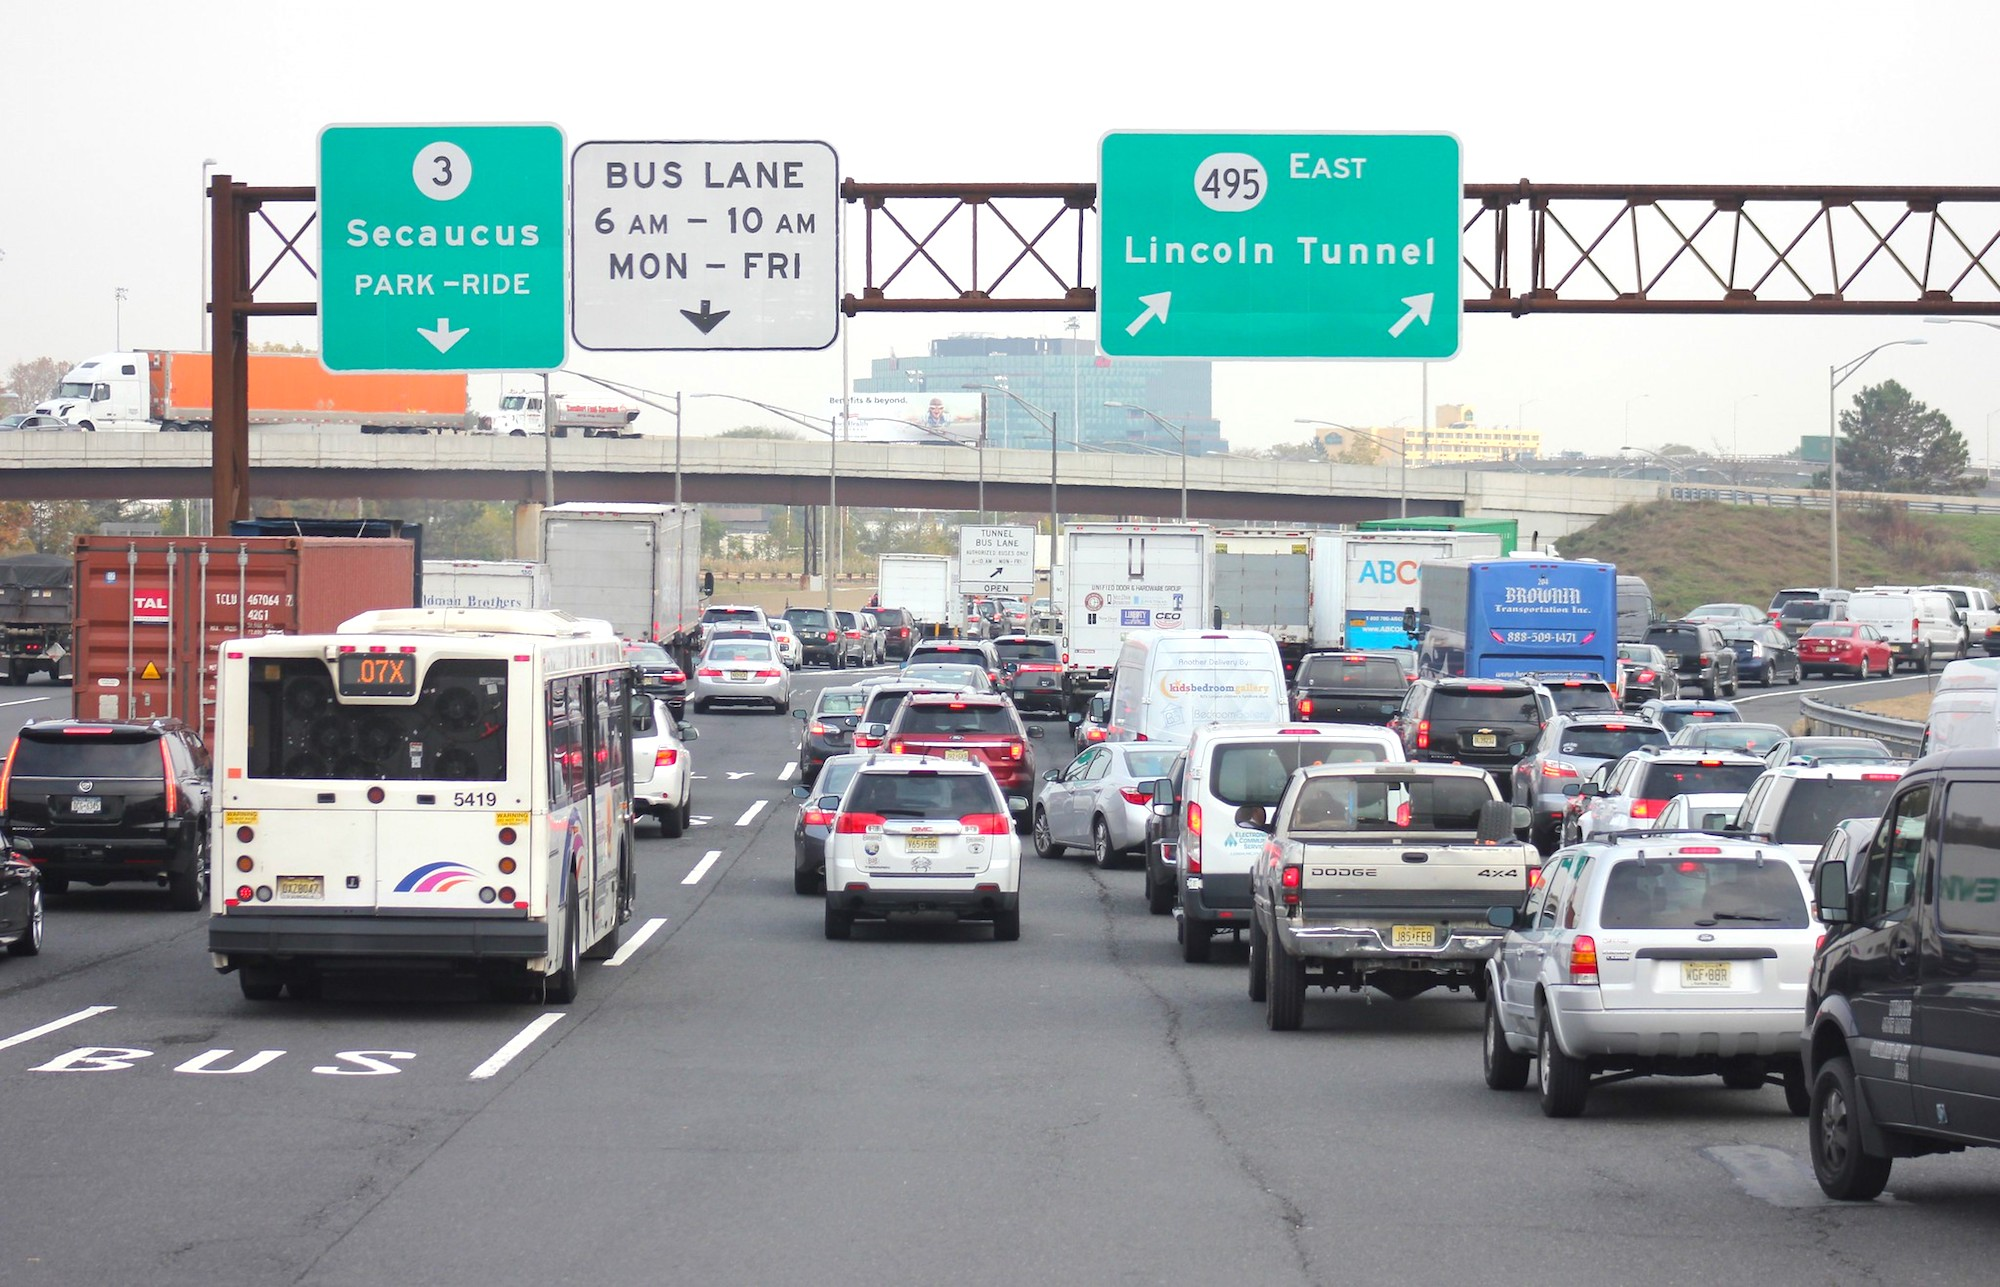 Self Driving Buses Proposed For Busy Lane In Lincoln Tunnel 6sqft